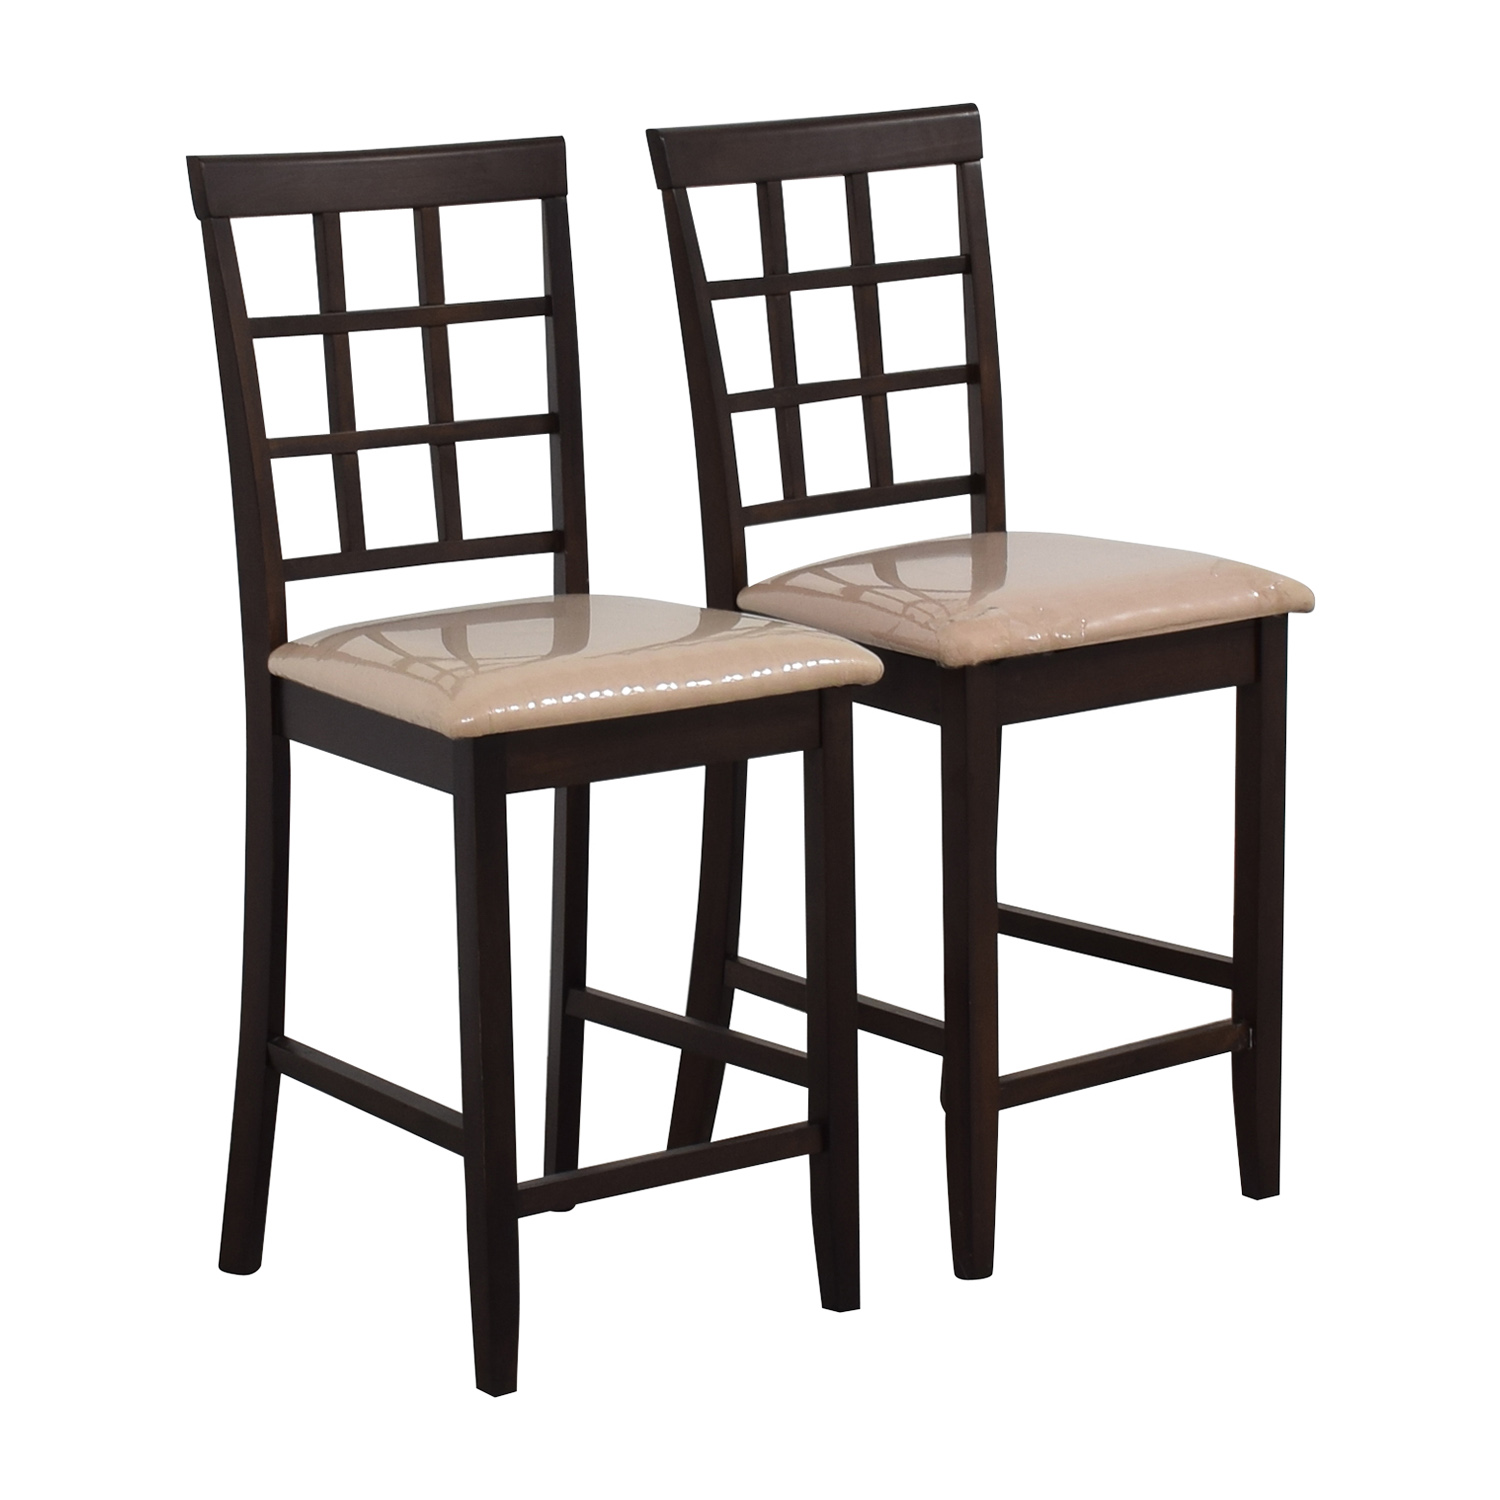 Cappuccino Counter Height Chairs / Stools